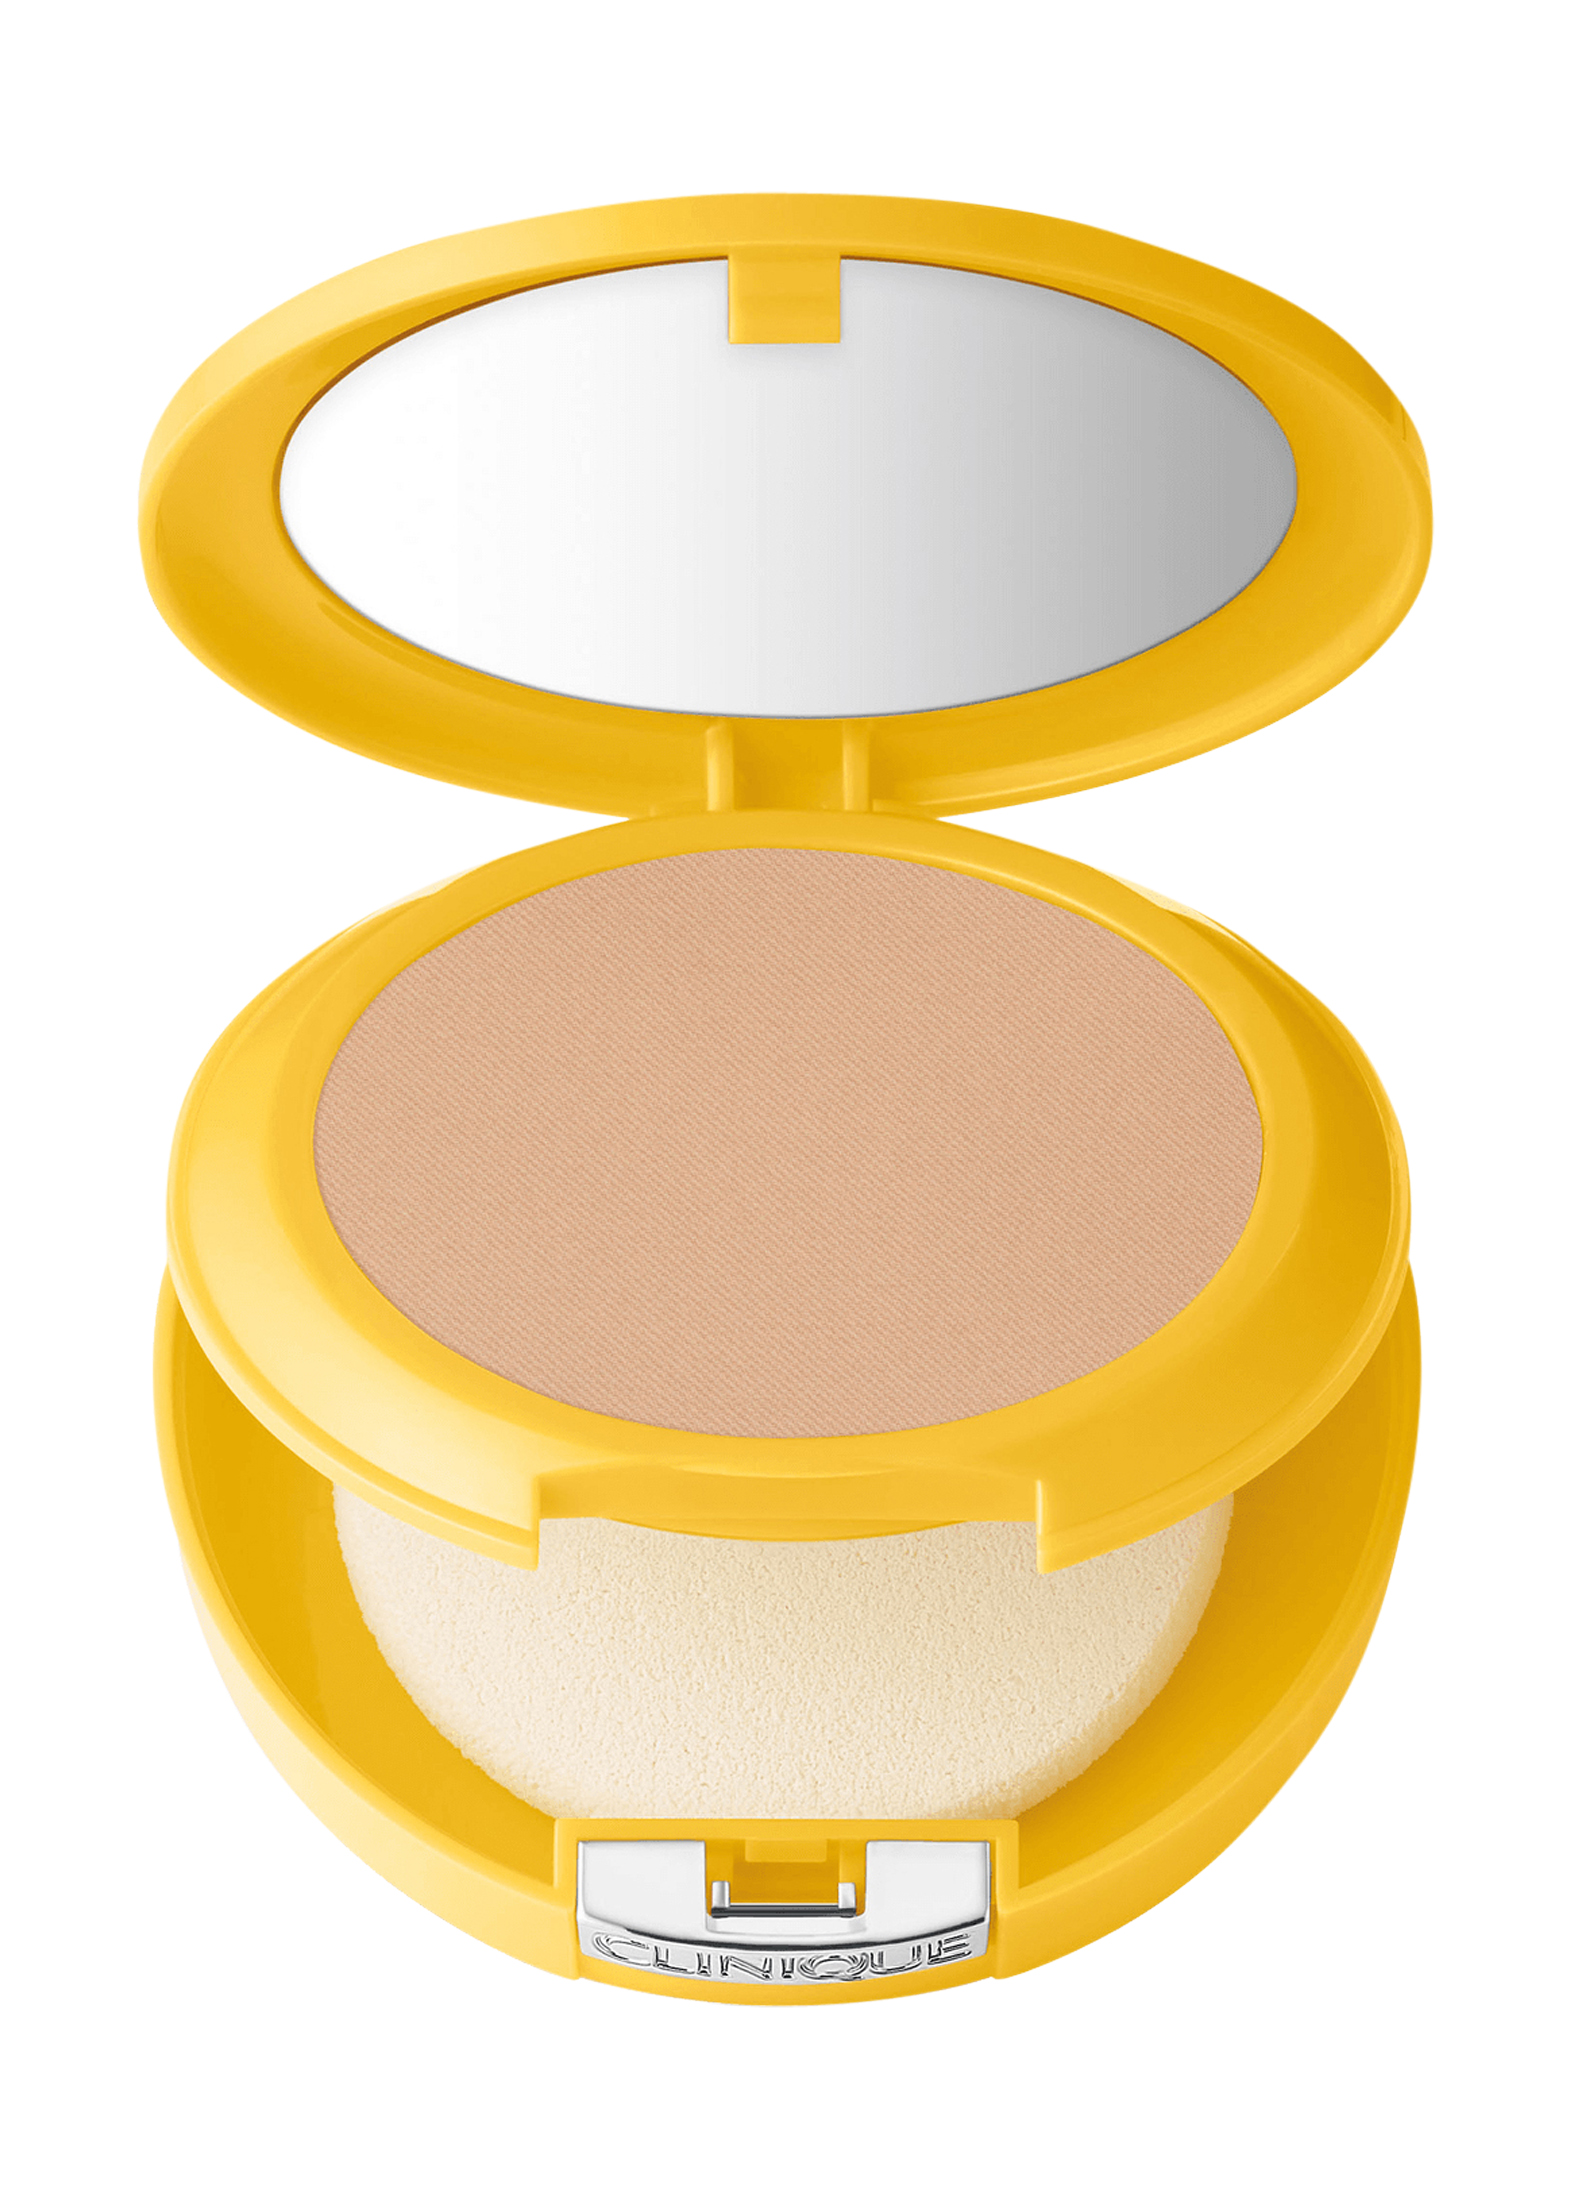 Sun SPF 30 Mineral Powder Makeup For Face-Very Fair image number 0